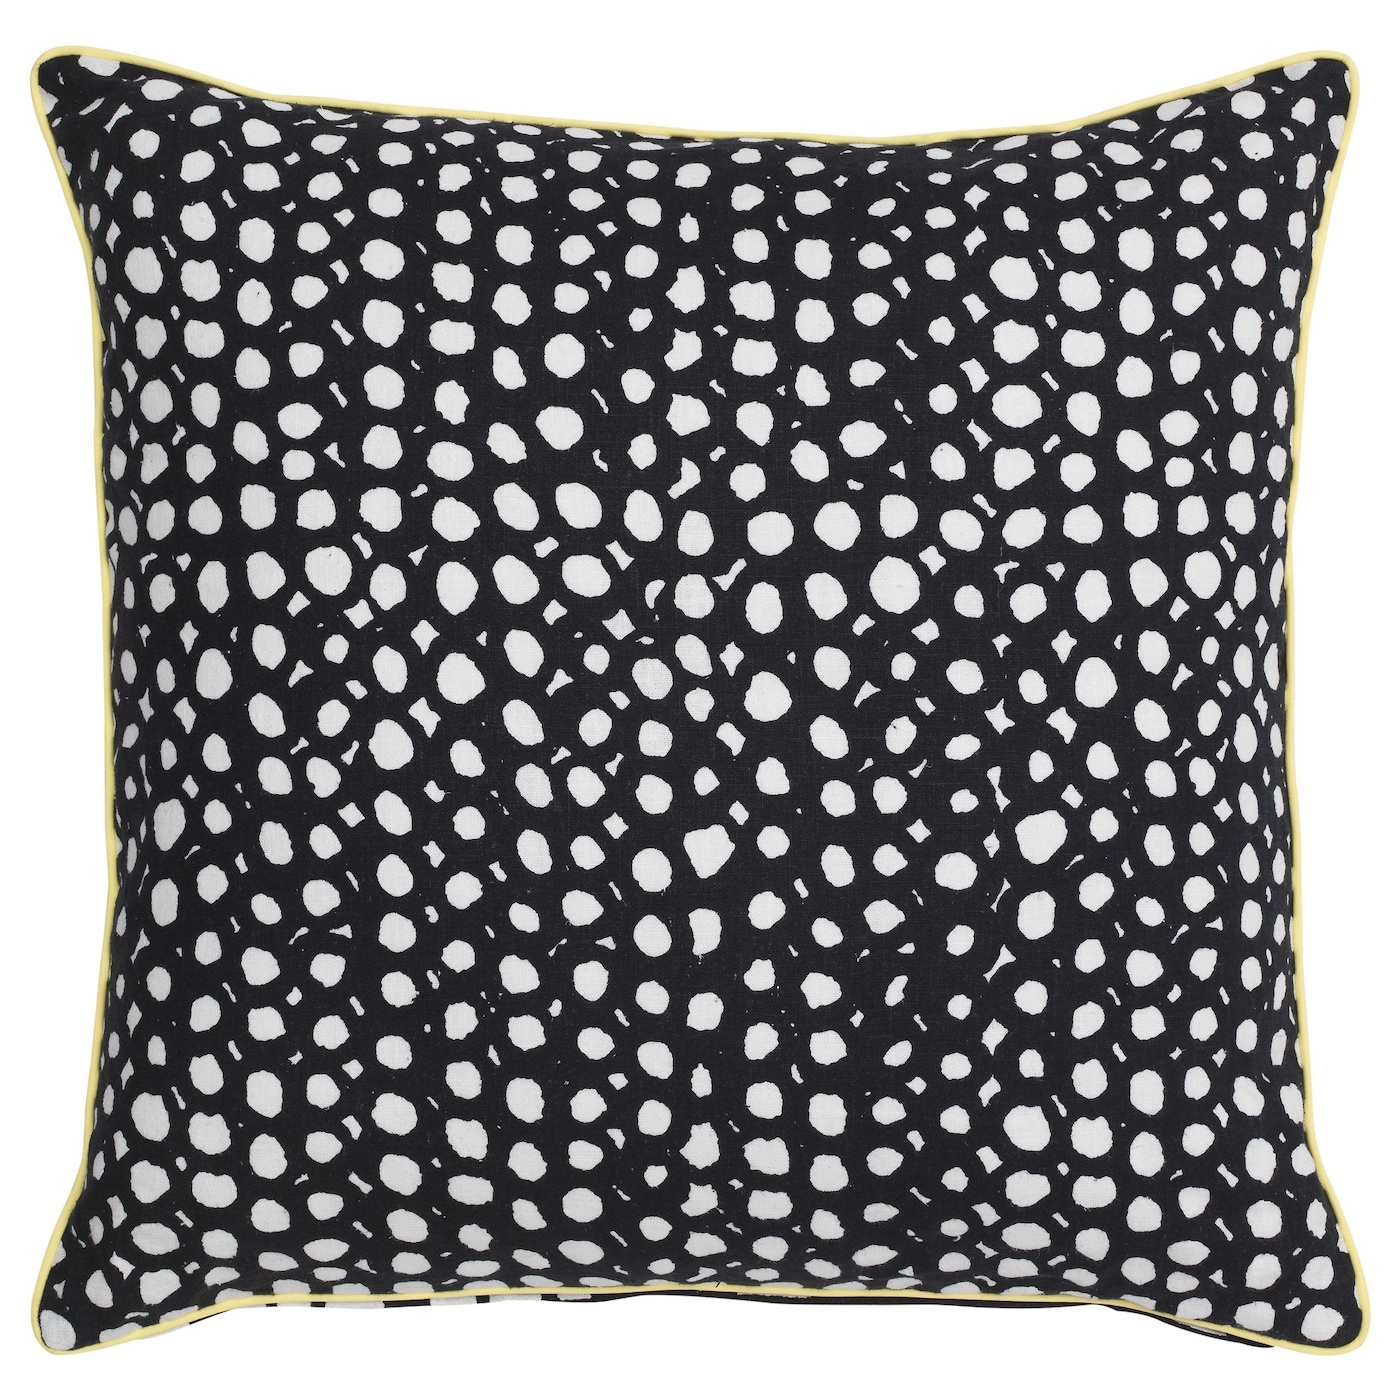 IKEA RÖDPLISTER cushion You can easily vary the look because the two sides have different designs.